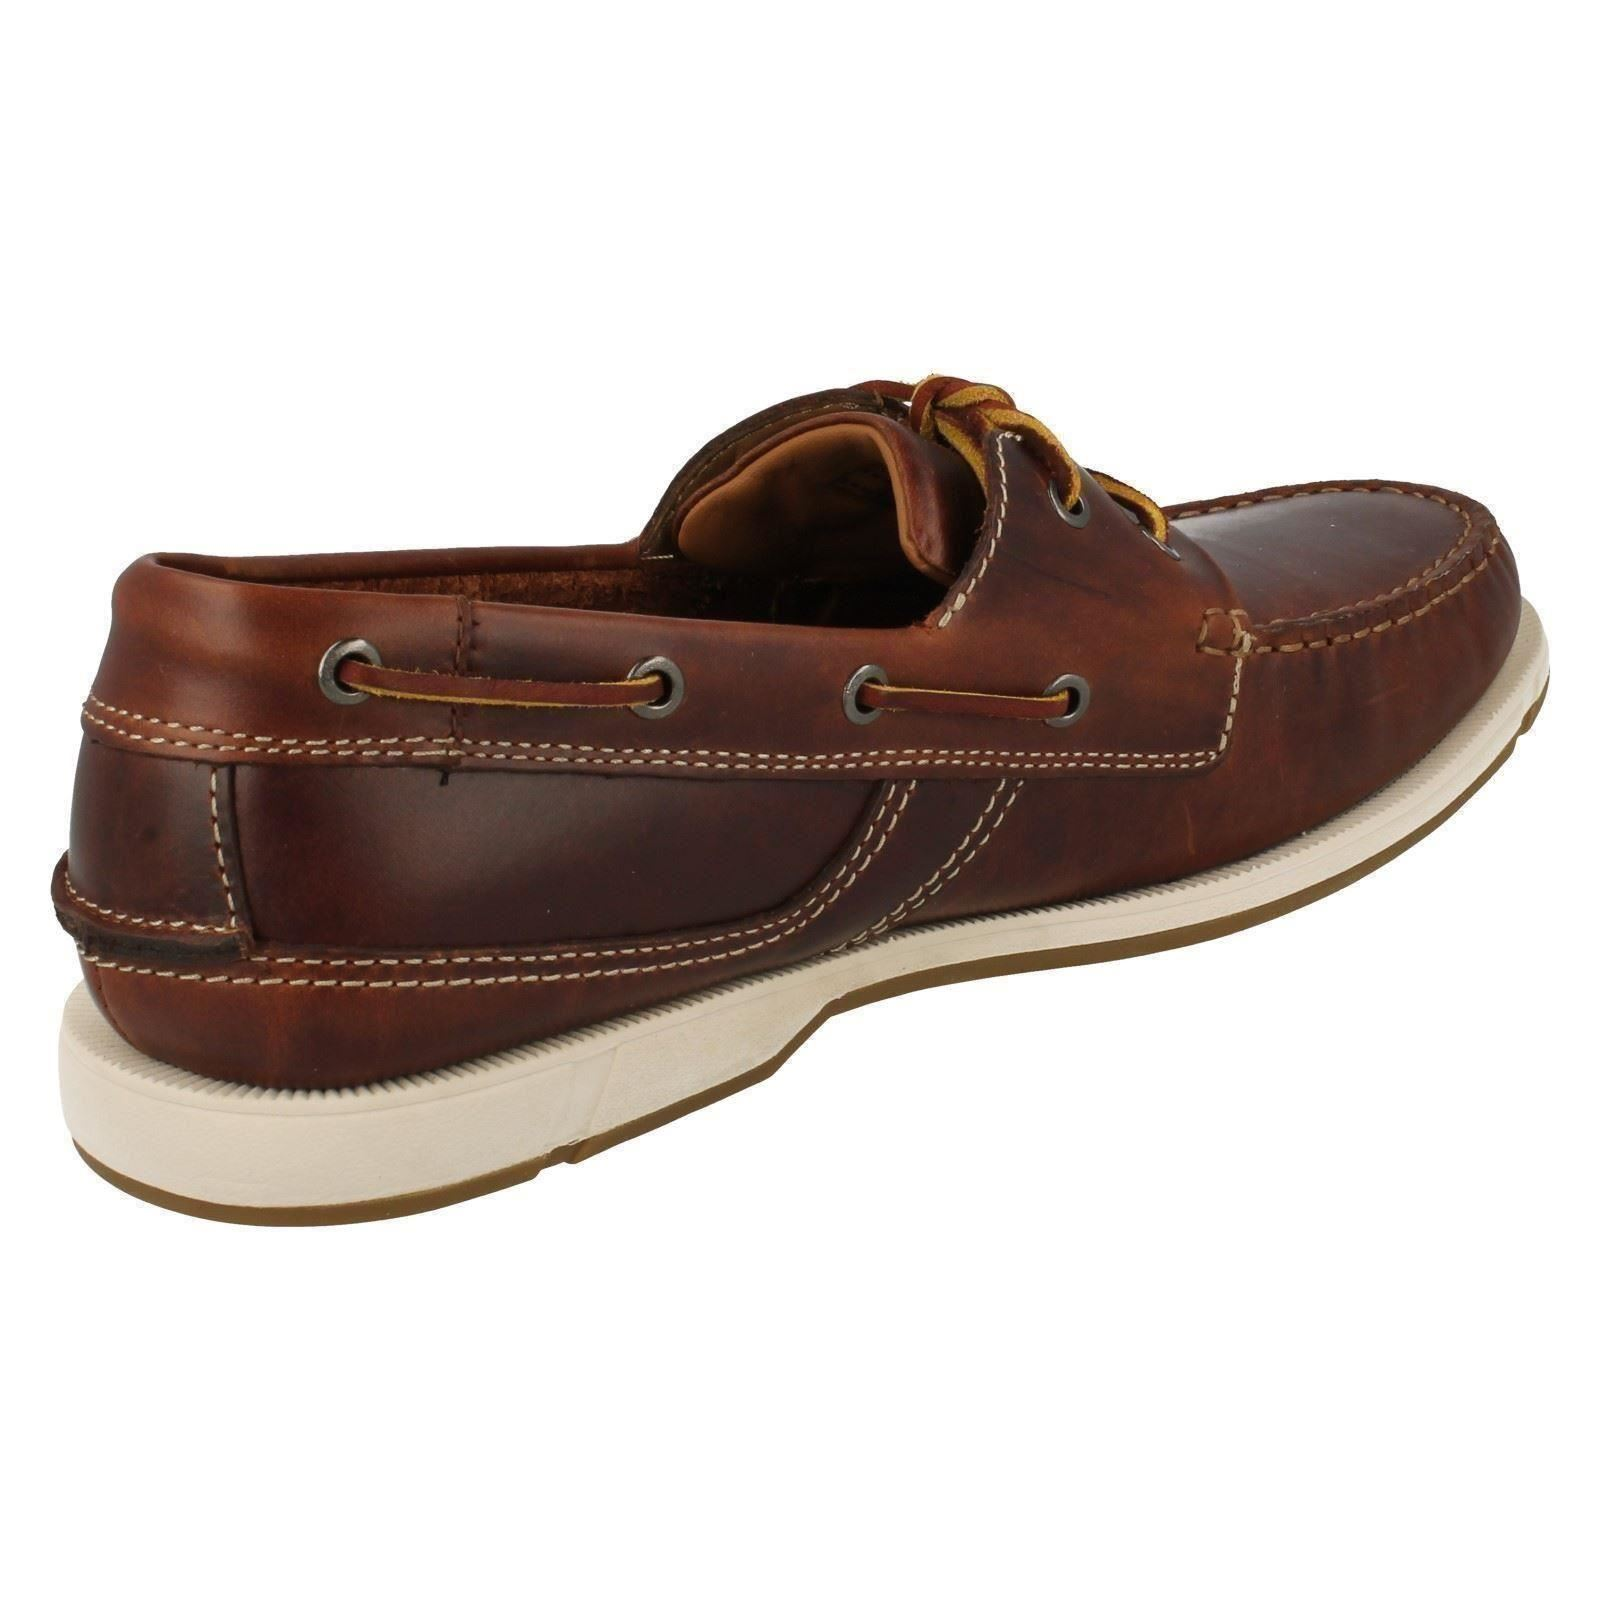 Mens Clarks Clarks Clarks Deck Style Smart/Casual Shoes Fulmen Row 6bdc67